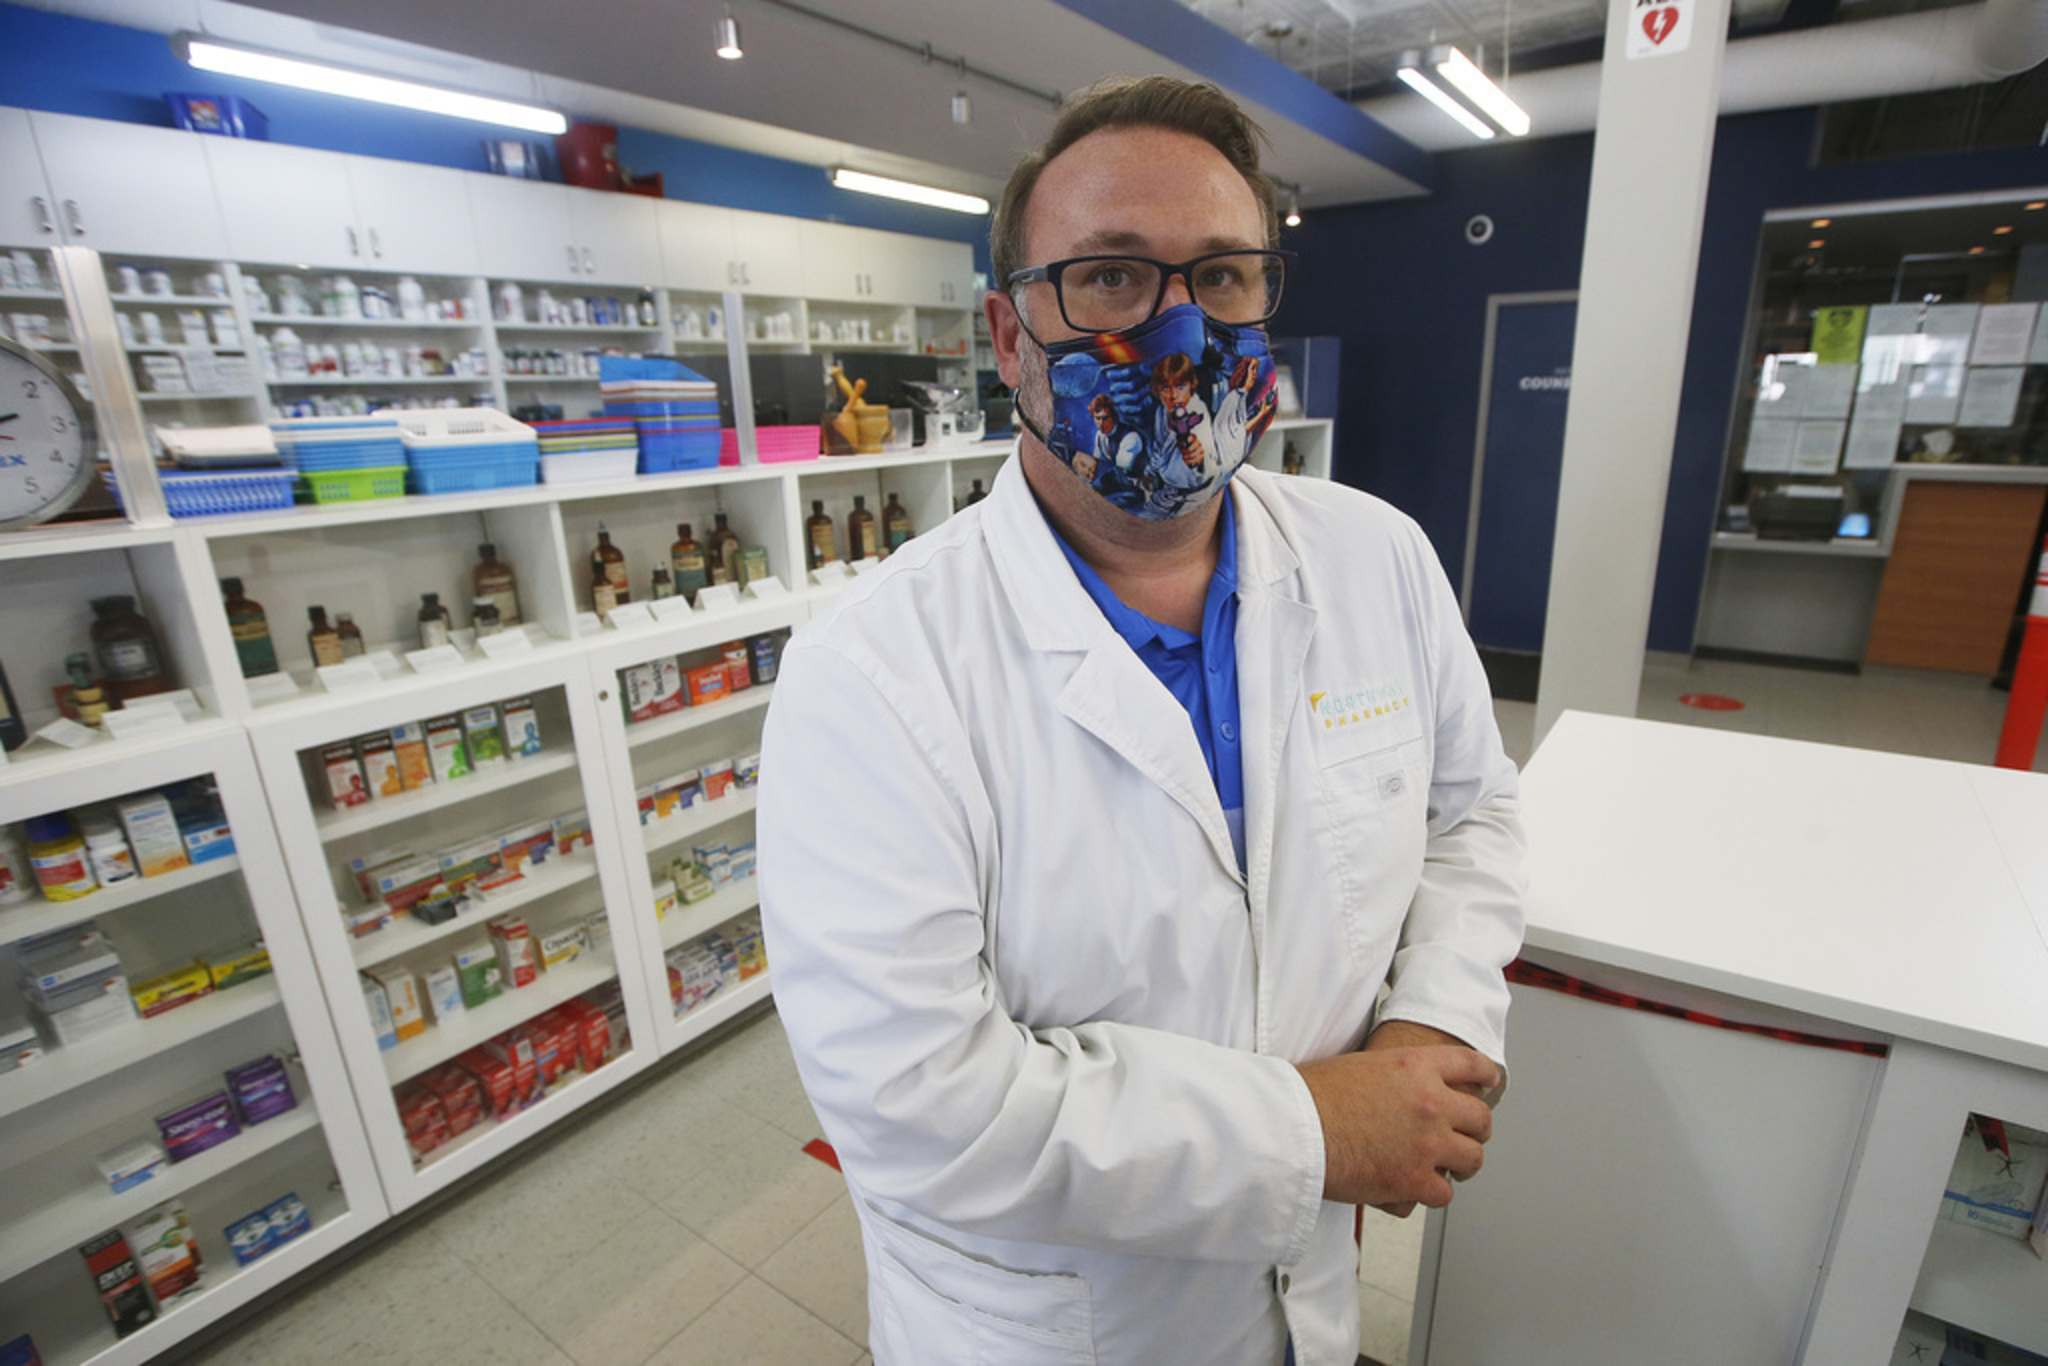 The concentrated methadone is enough to kill someone, says pharmacist Mike Watts. (John Woods / Winnipeg Free Press)